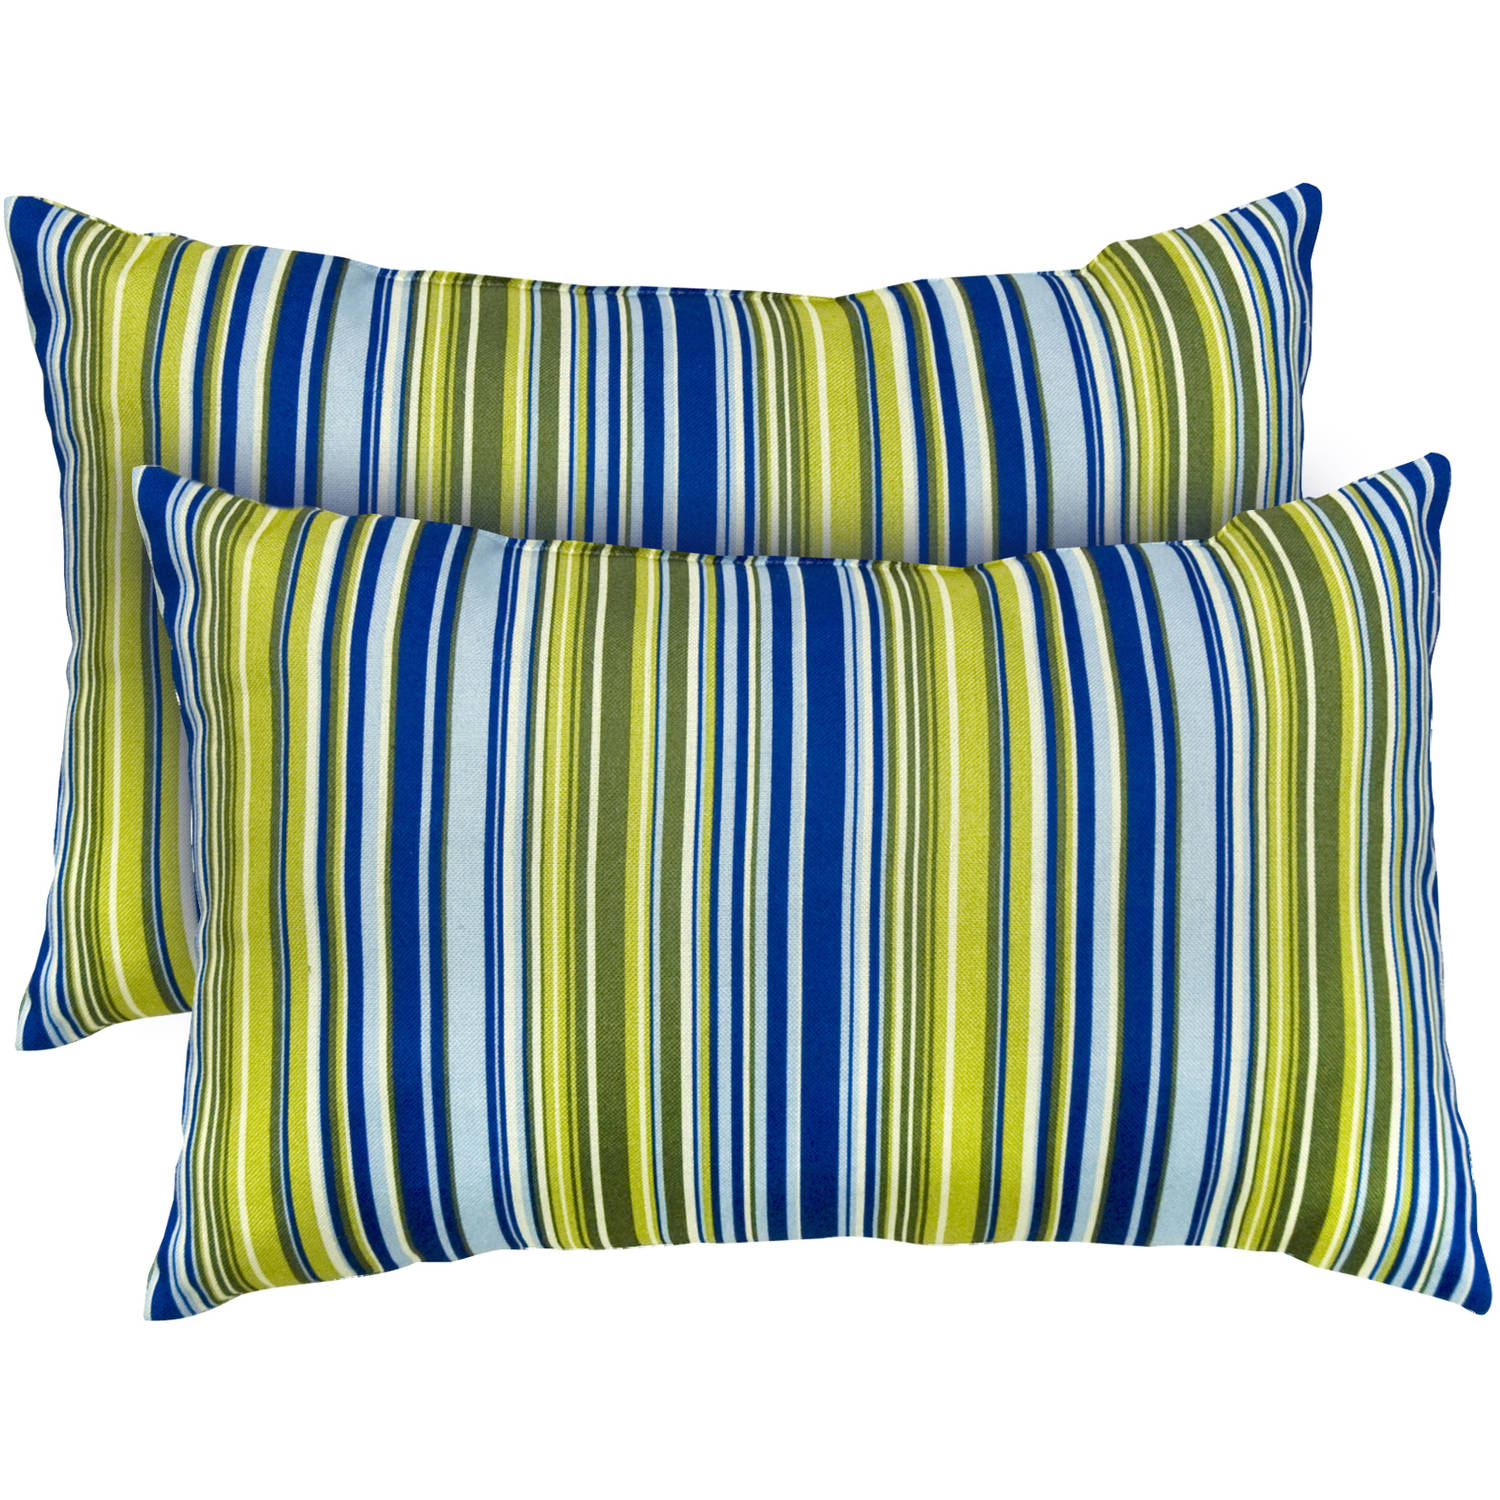 Rectangle Indoor Accent Pillows, Set of 2, Vivid Stripe